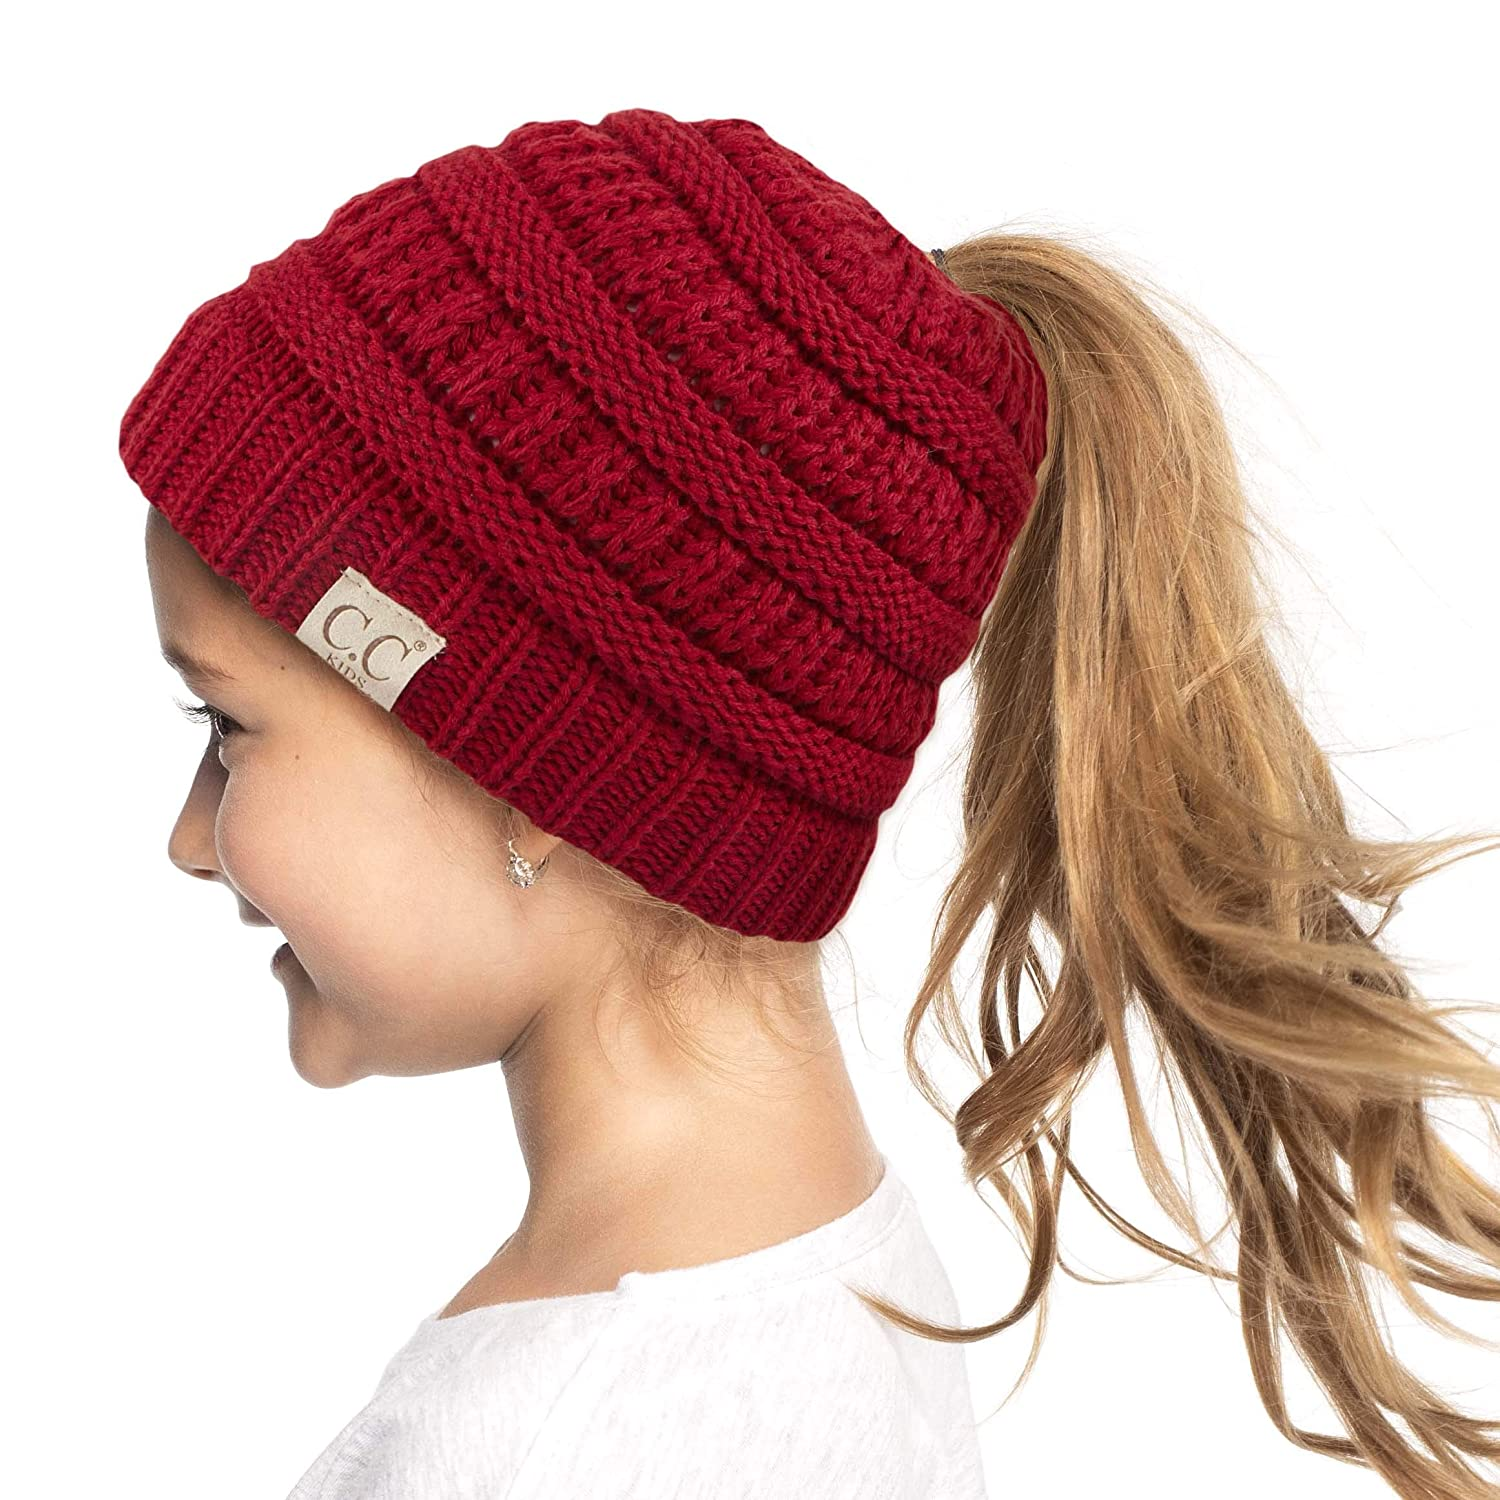 C.C Exclusives Kids Beanie Ages 2-7 Warm Chunky Thick Stretchy Knit Beanie Tail Hat for Kids Skull Hat C.C® KIDS MESSY BUN